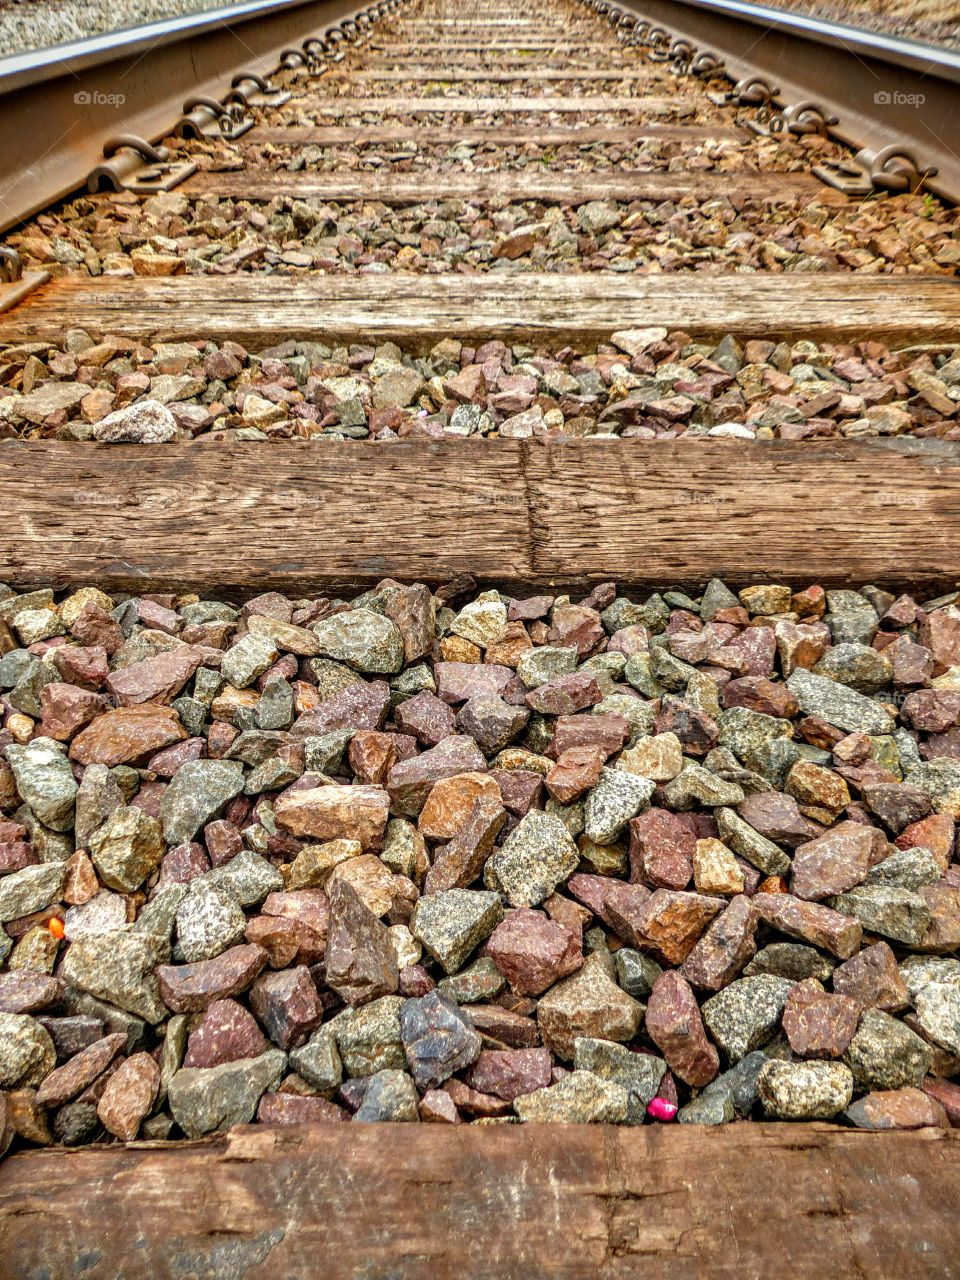 Close-up of a railroad track